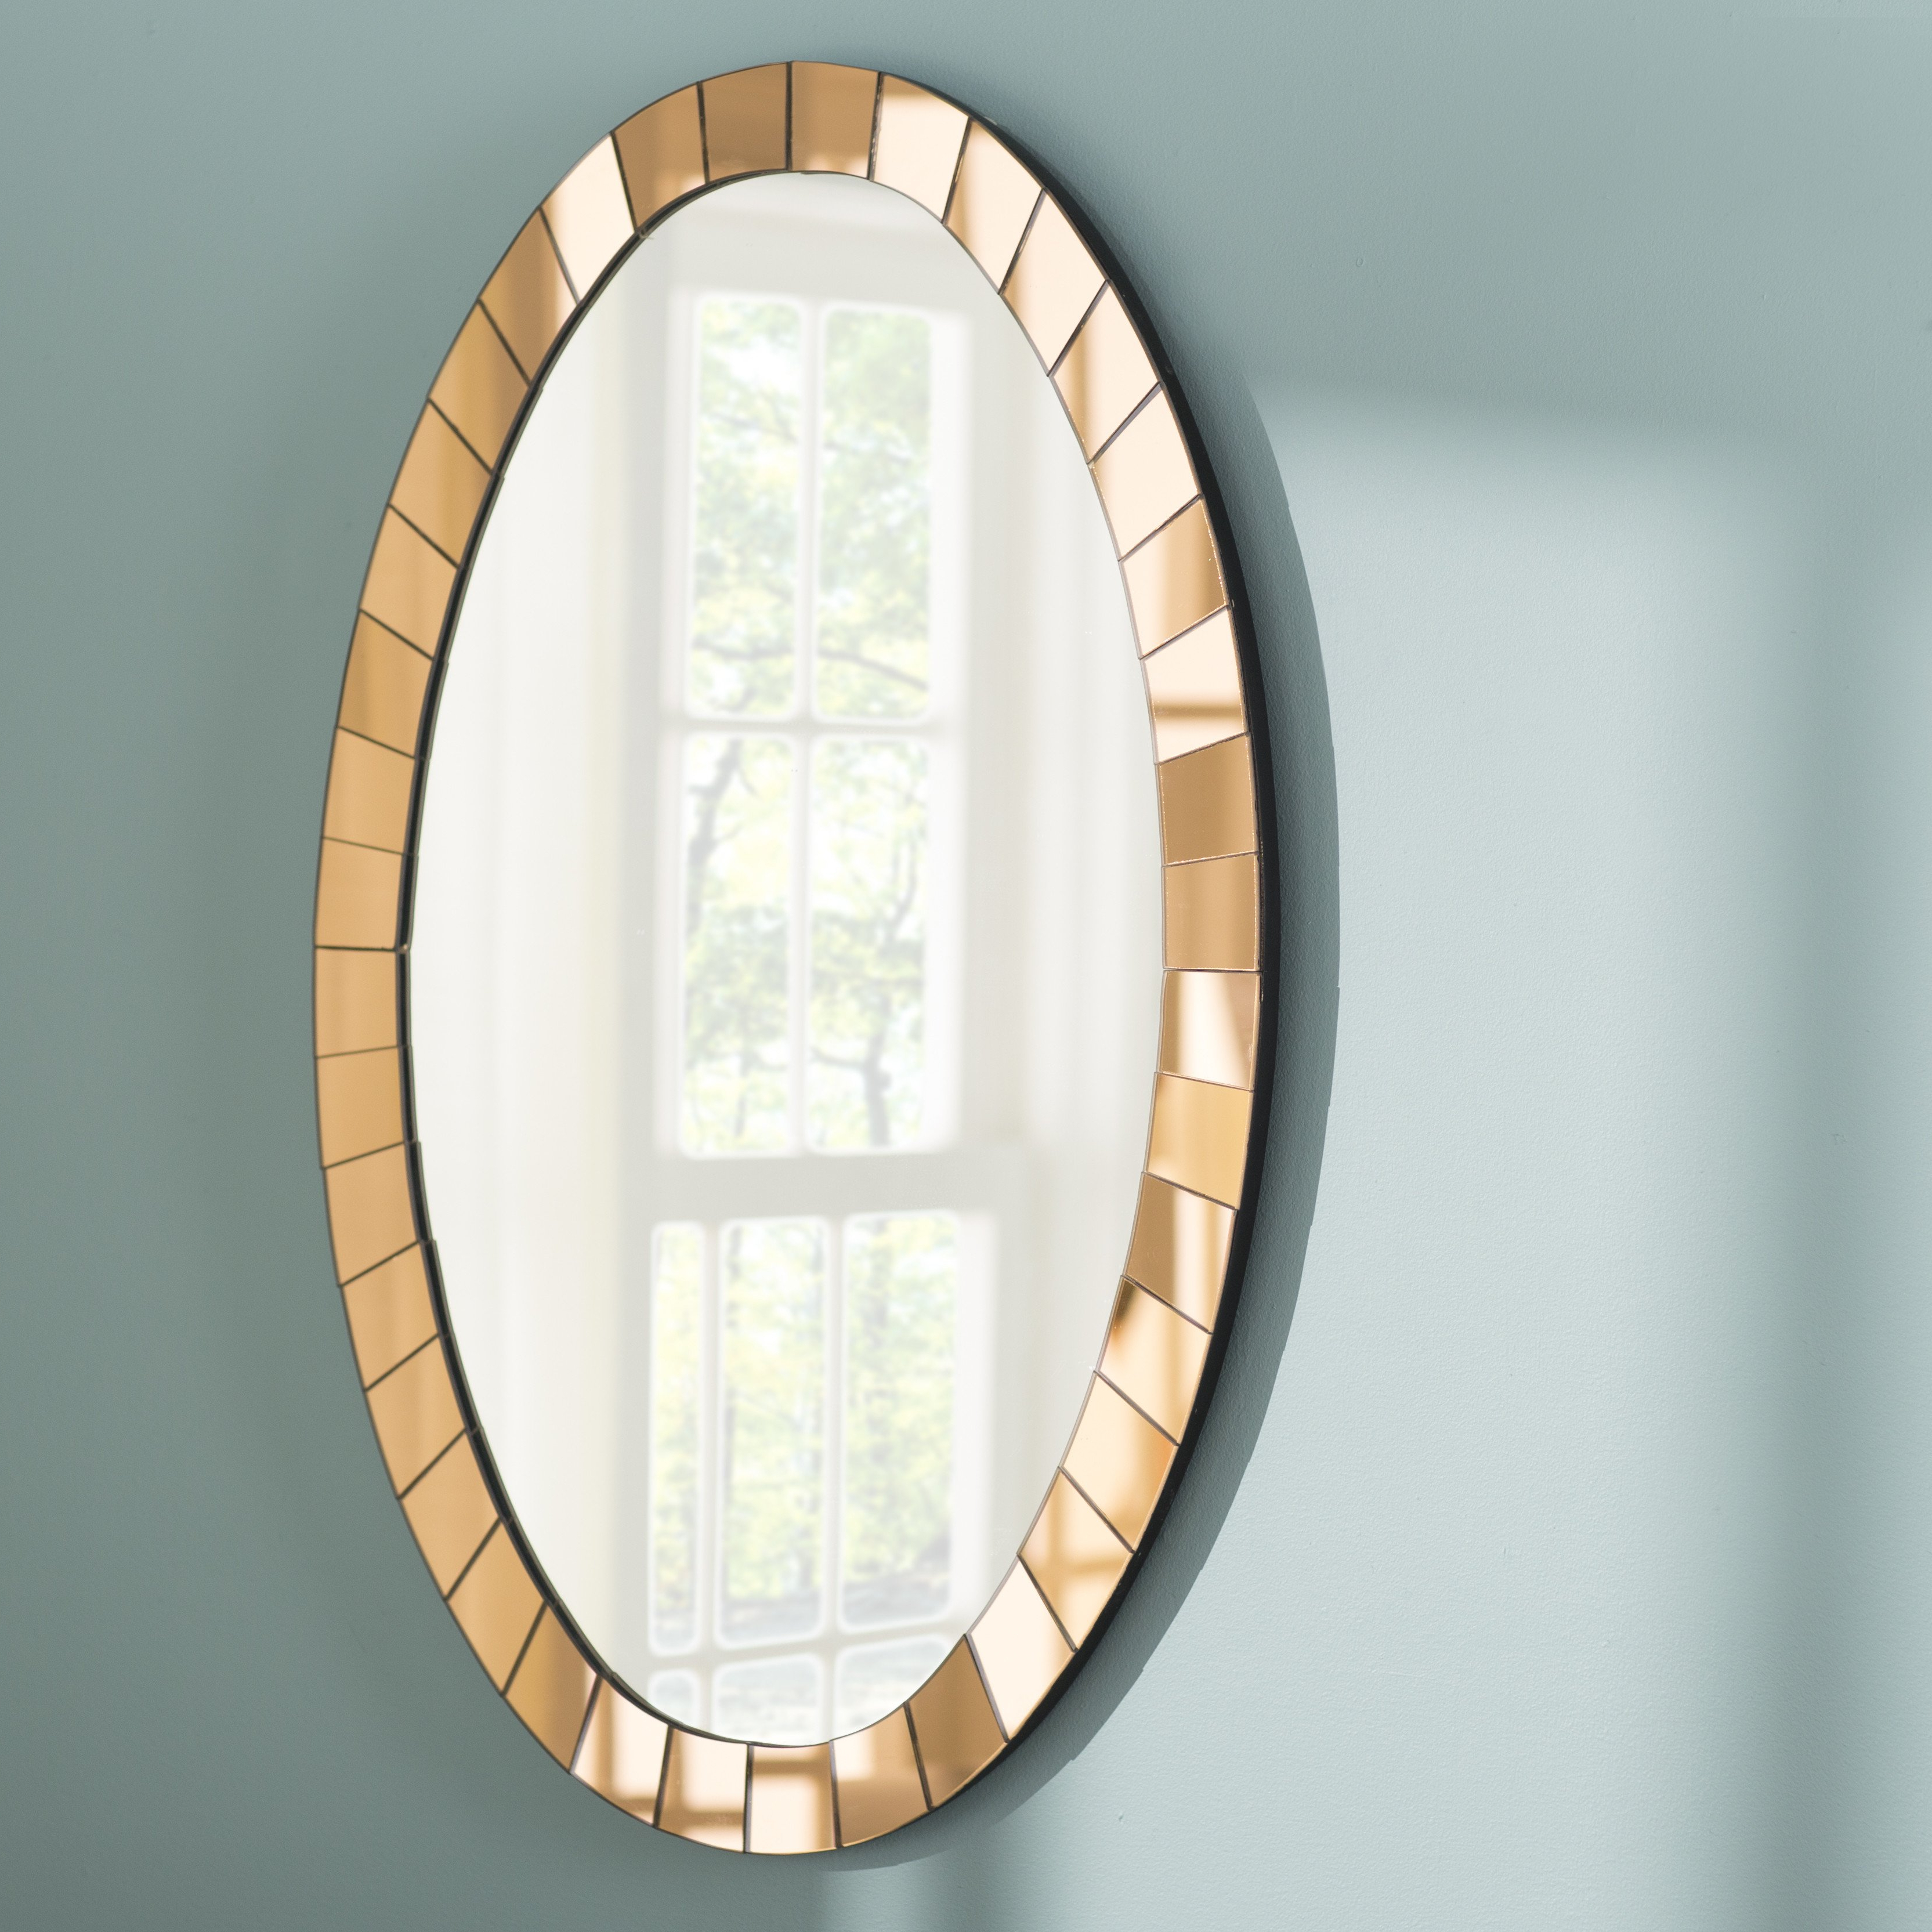 Boyers Wall Mirrors Regarding Well Liked Dusx Decorative Wall Mirror Wayfair Uk Home Decorators Collection (View 20 of 20)